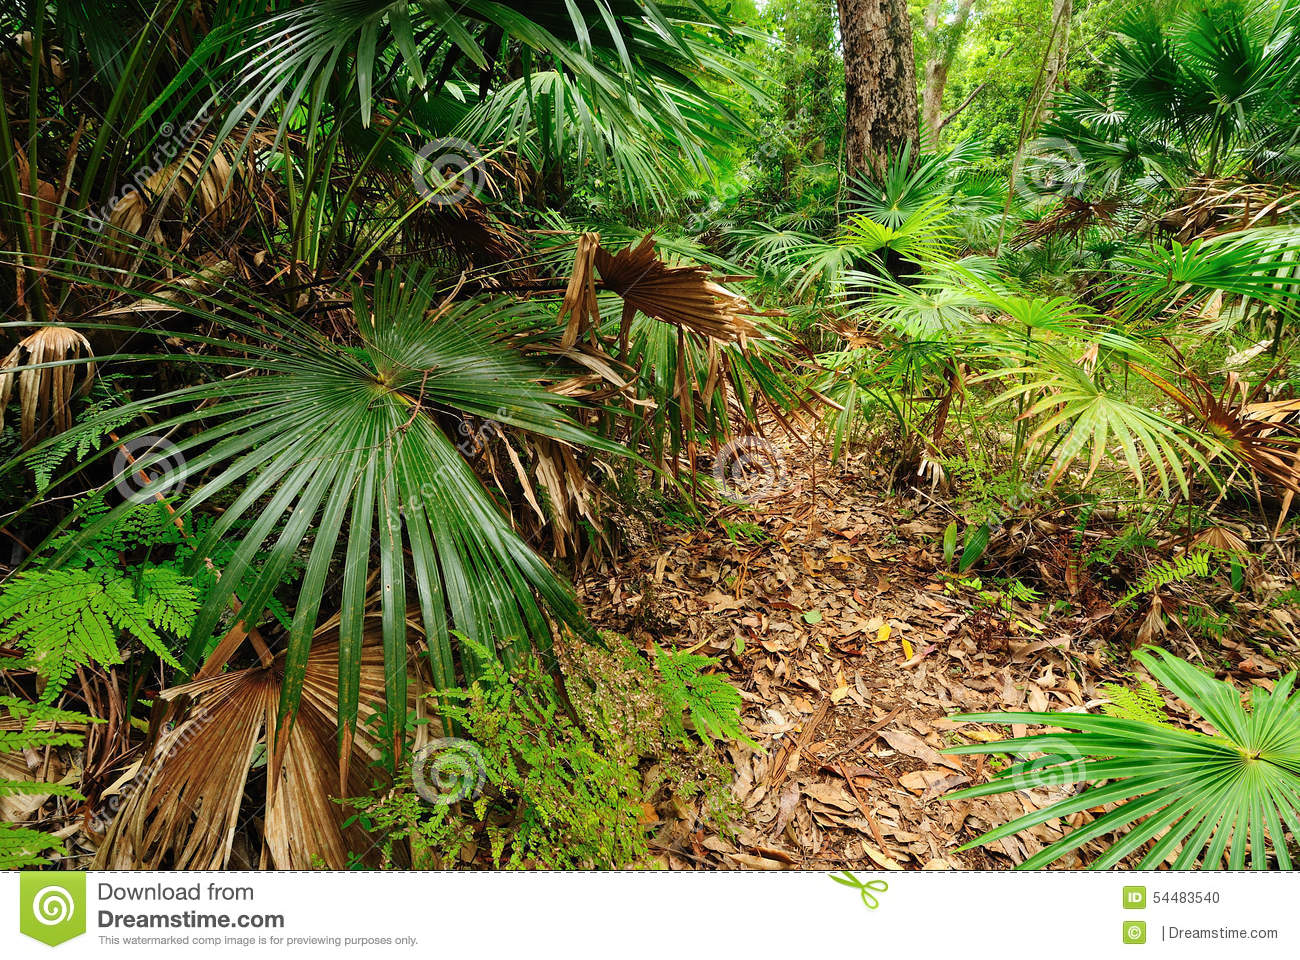 Australian bush forest with green trees and plants.